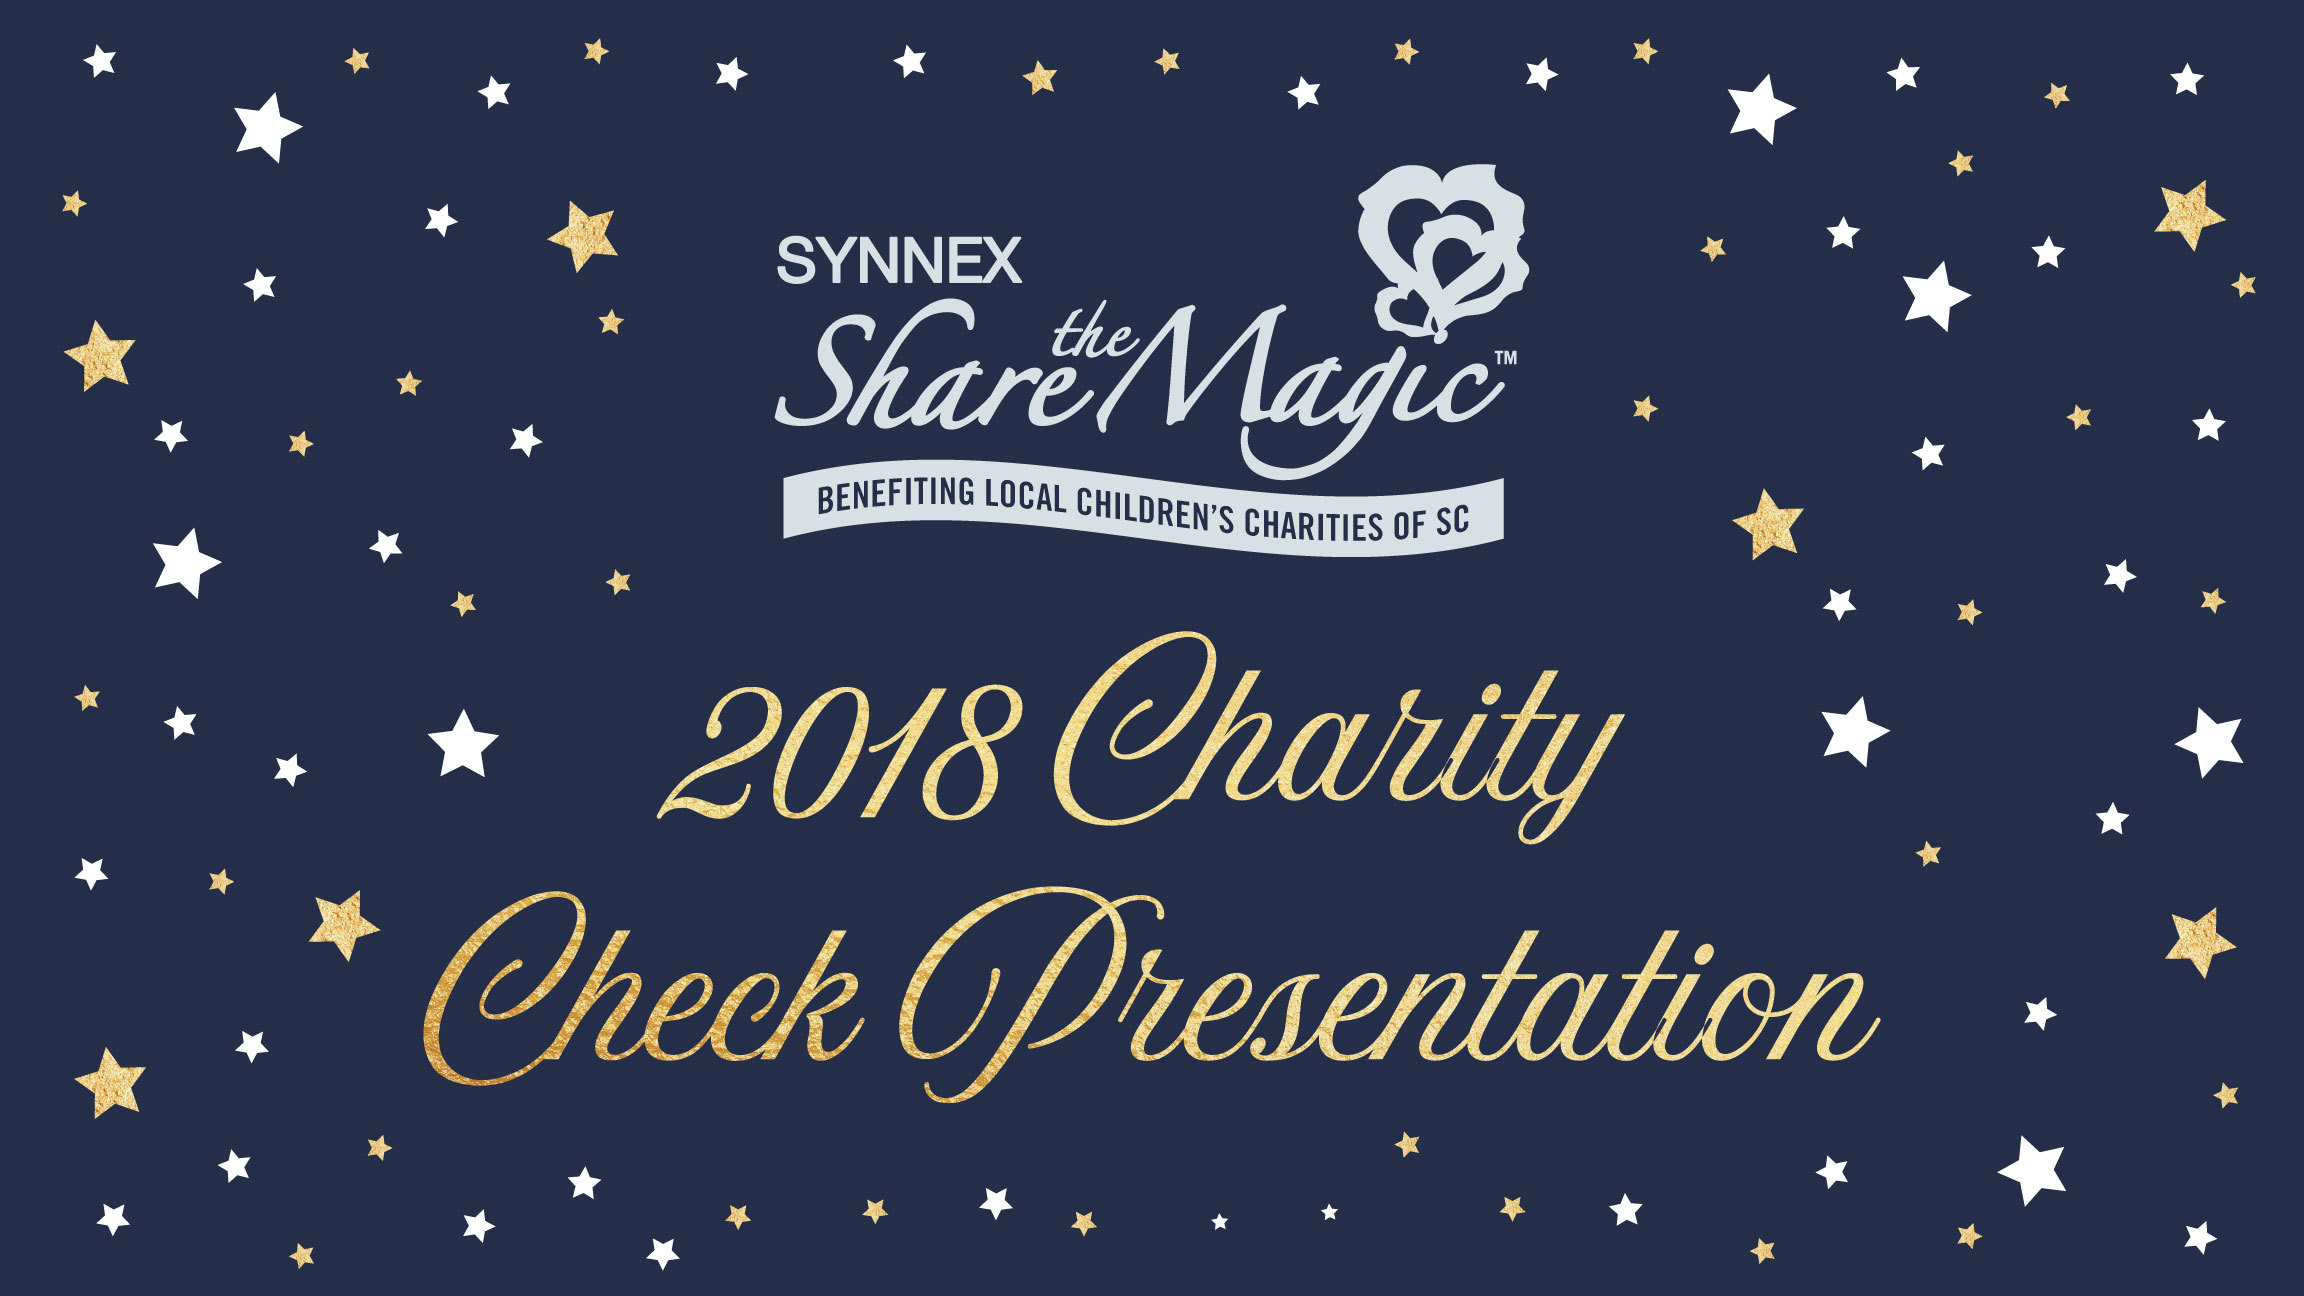 SYNNEX Share the Magic Raises More Than $10 Million for  Upstate Children's Charities Since 2011